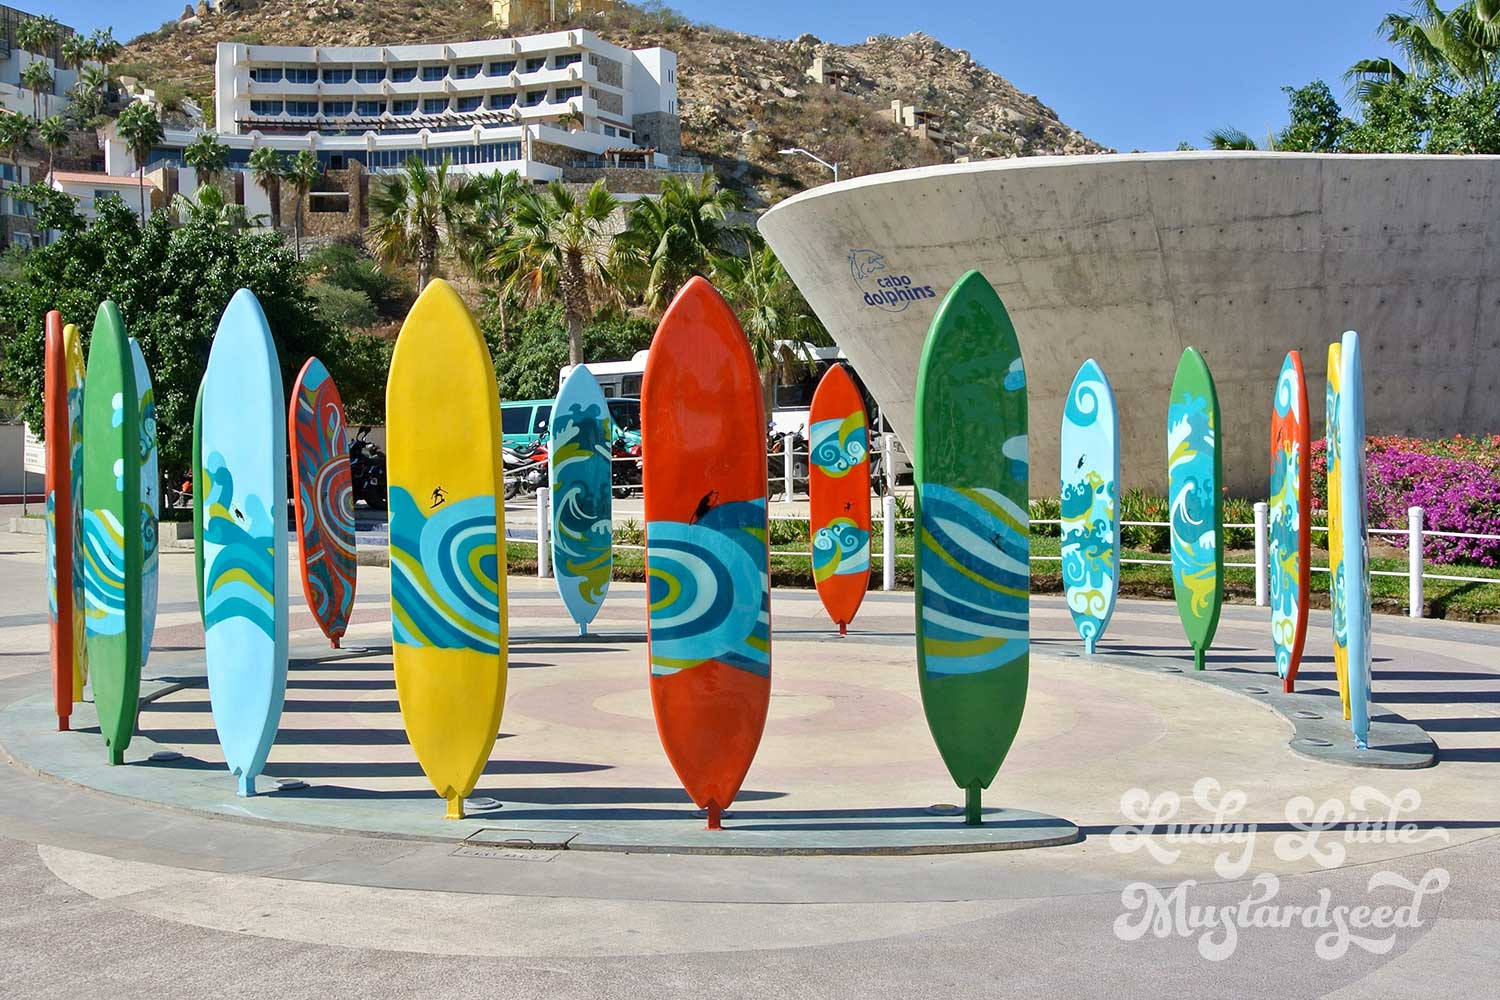 Jenna-Pilant-Style-Blogger-San-Diego-Lucky-Little-Mustardseed-Me-and-D-Cabomoon-Breathless-Resort-Cabo-4